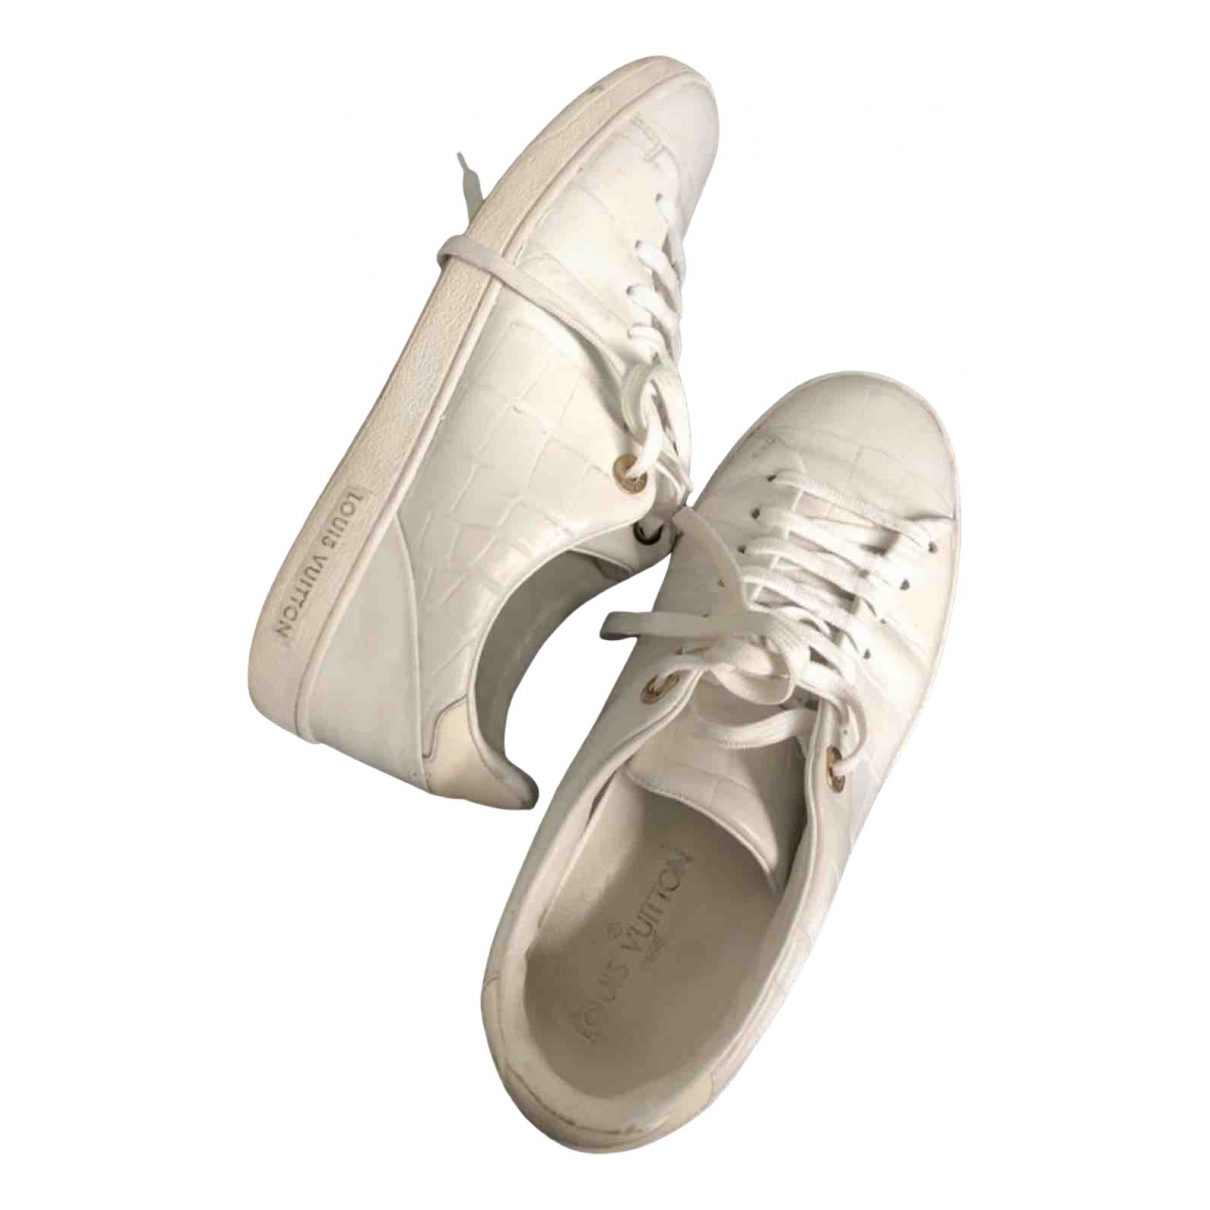 Louis Vuitton FrontRow White Leather Trainers for Women 37.5 EU